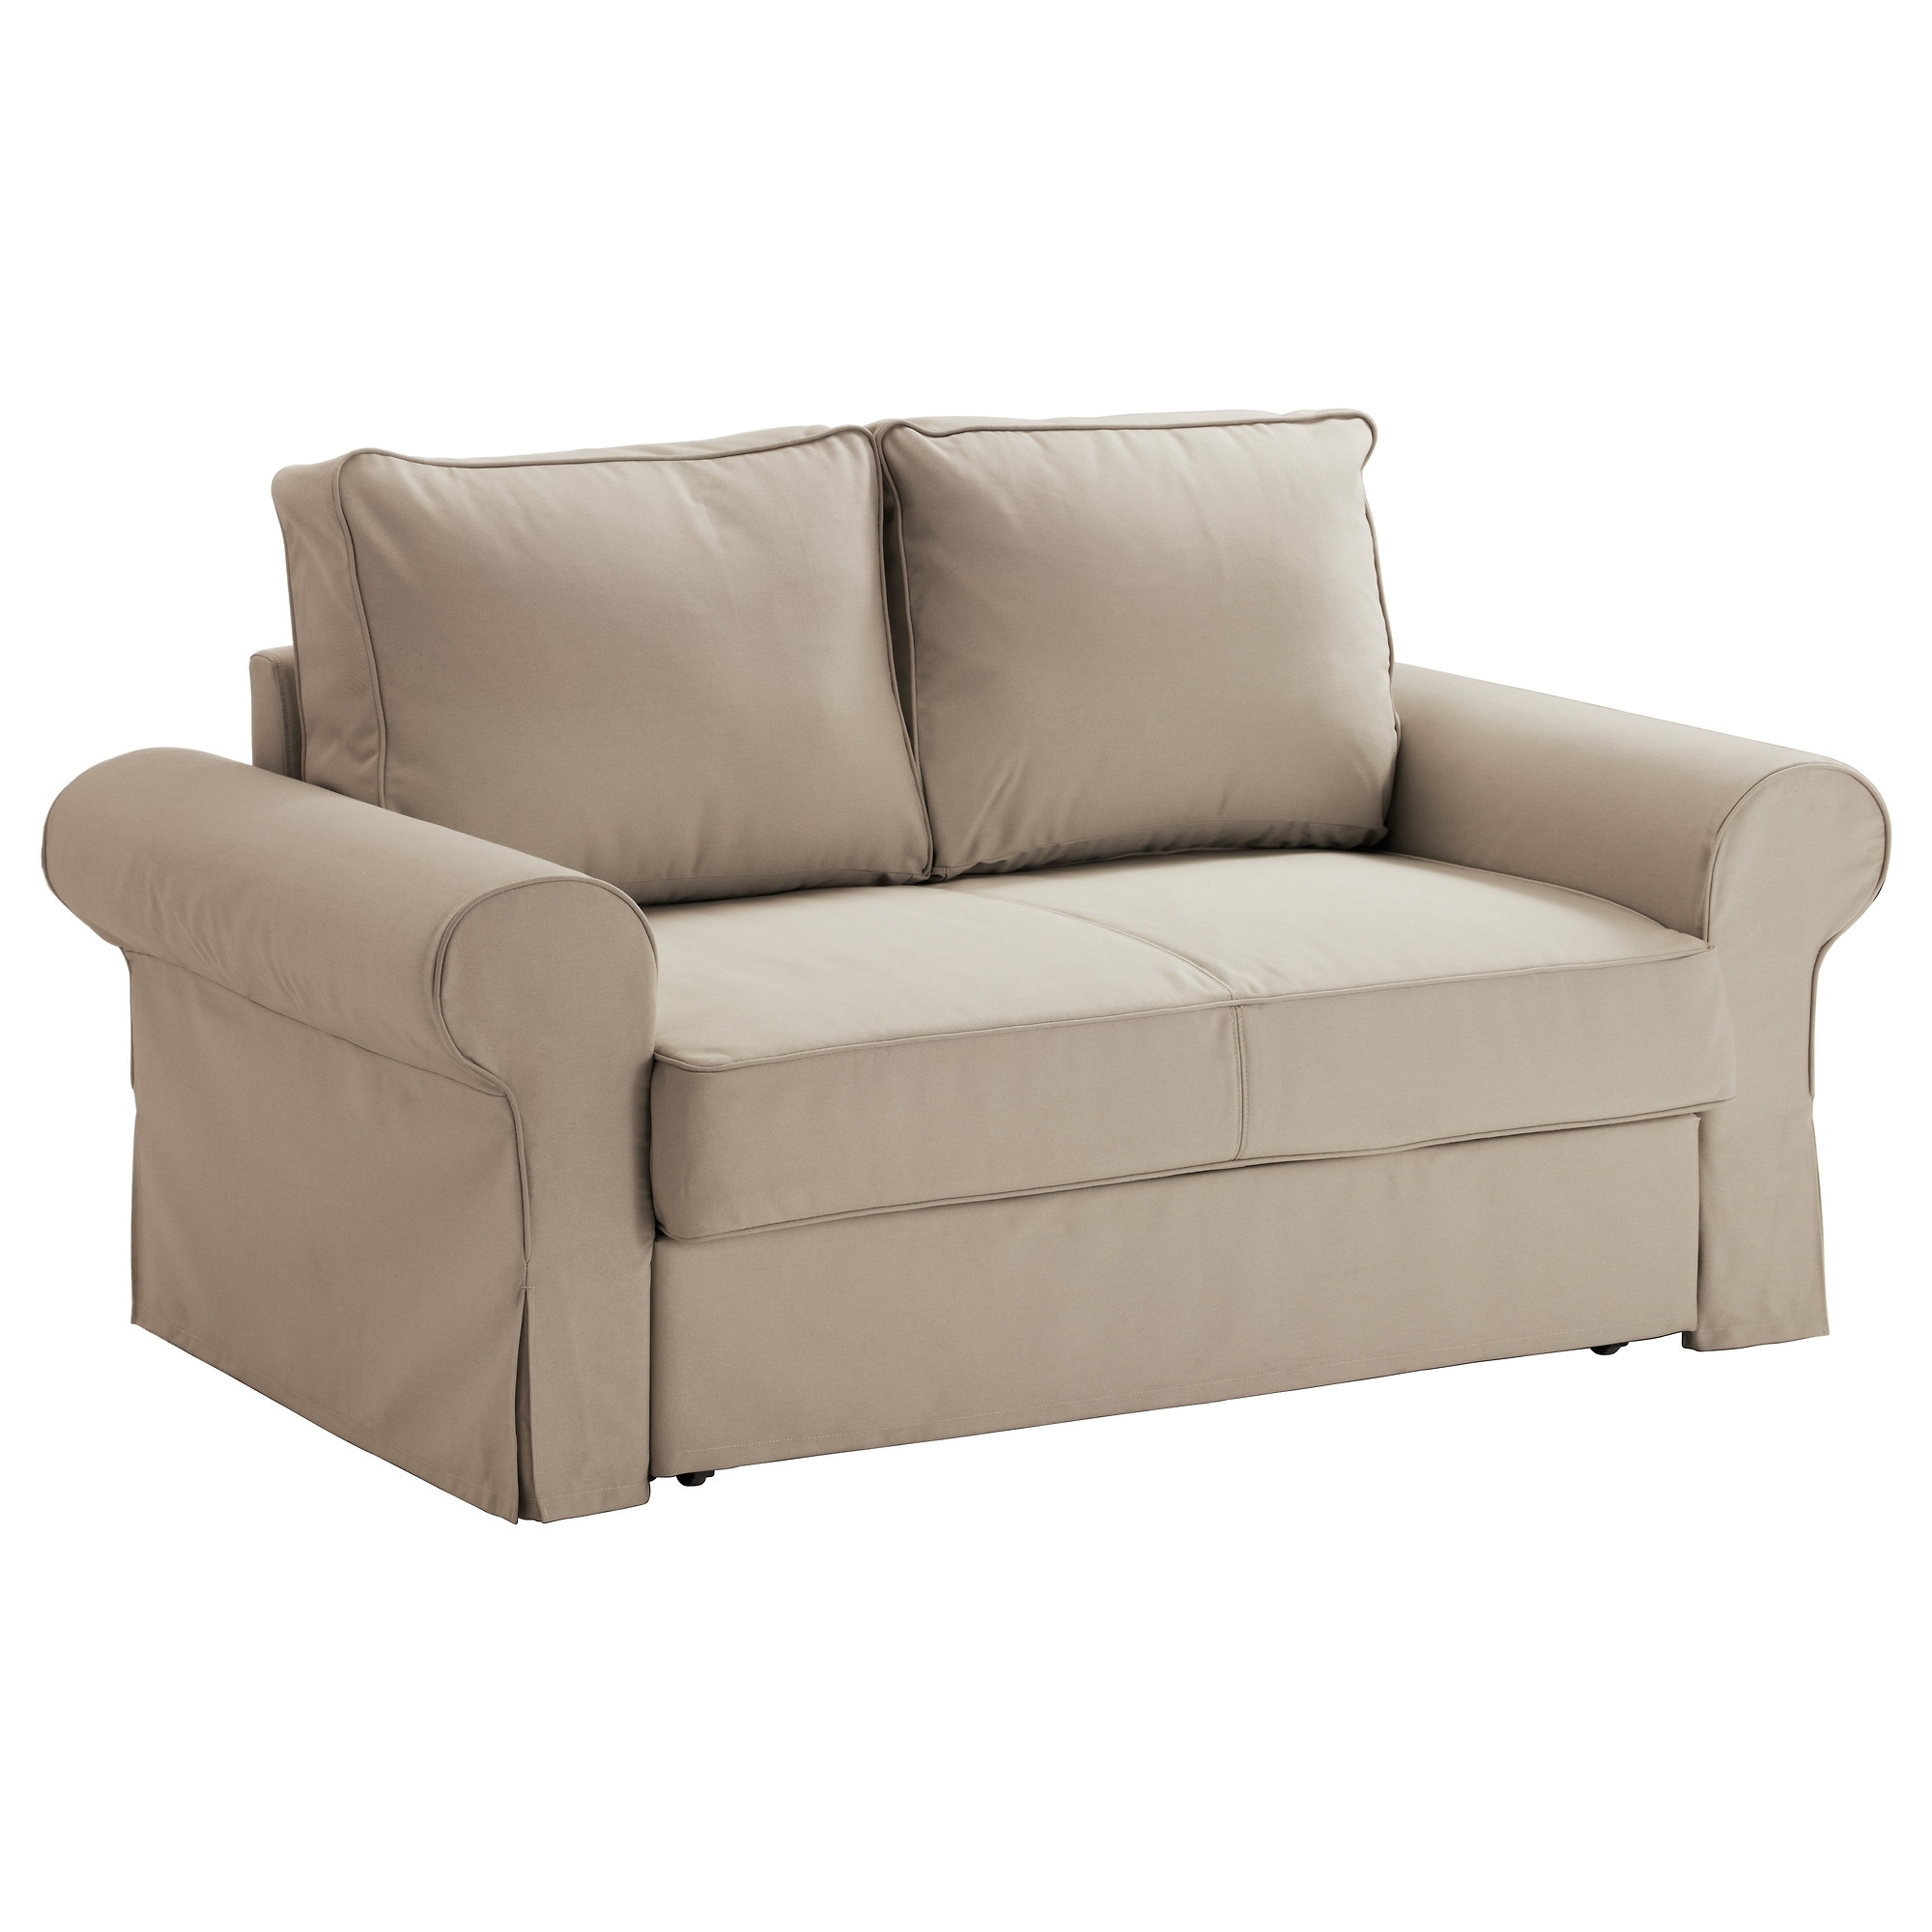 Backabro Two Seat Sofa Bed Ramna Beige – Ikea For Most Popular Ikea Two Seater Sofas (View 10 of 20)